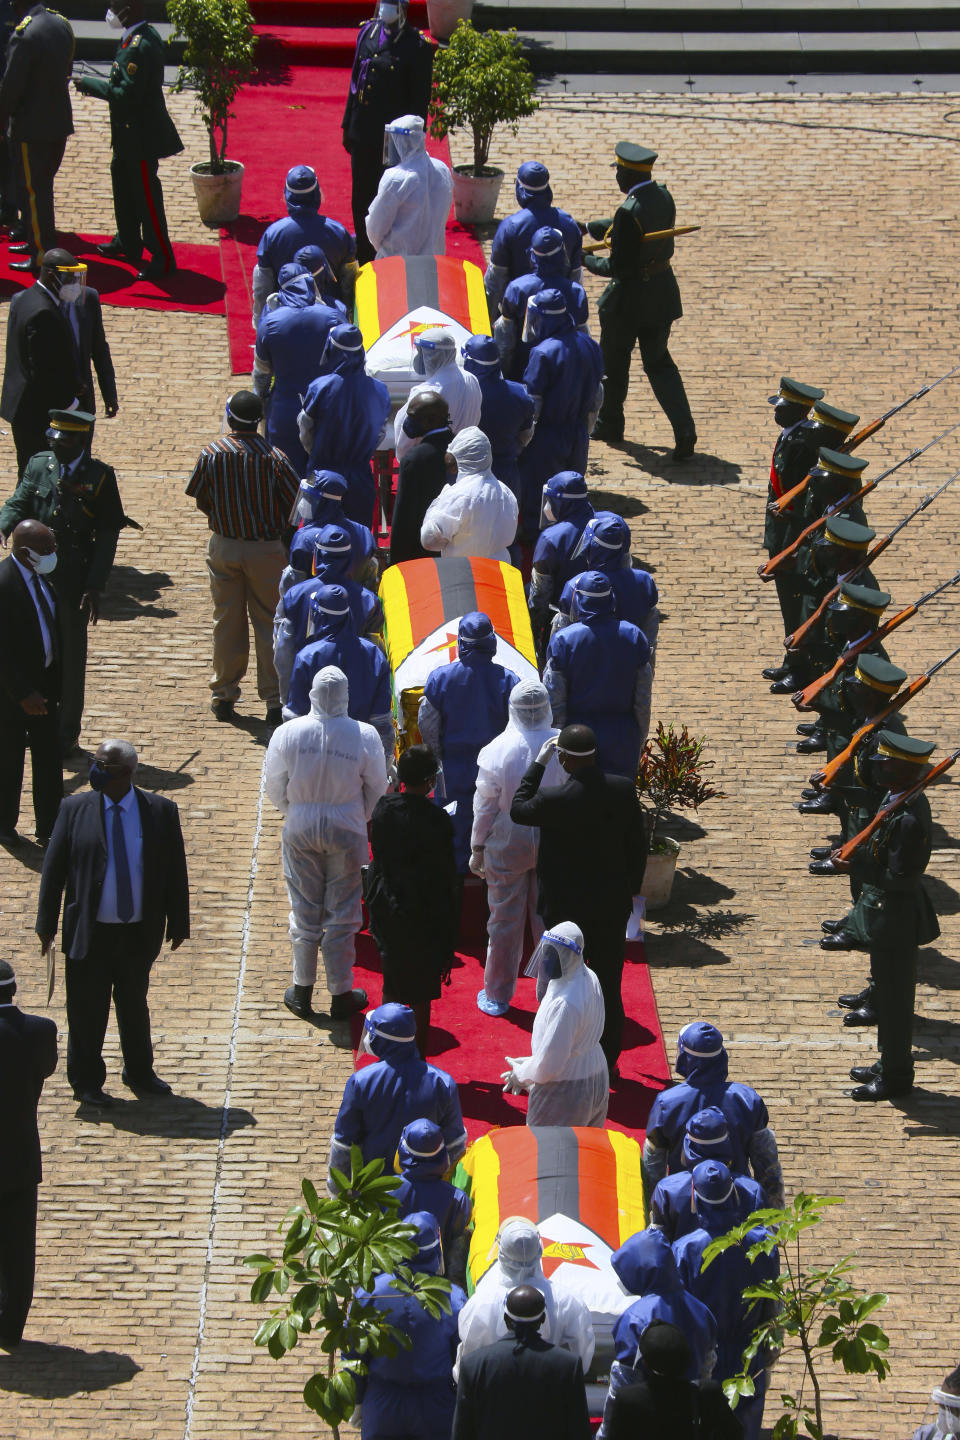 Pallbearers stand by the coffins of three top government officials prior to their burial, at the National Heroes Acre in Harare, Wednesday, Jan. 27, 2021. Zimbabwe on Wednesday buried three top officials who succumbed to COVID-19, in a single ceremony at a shrine reserved almost exclusively for the ruling elite as a virulent second wave of the coronavirus takes a devastating toll on the country. (AP Photo/Tsvangirayi Mukwazhi)